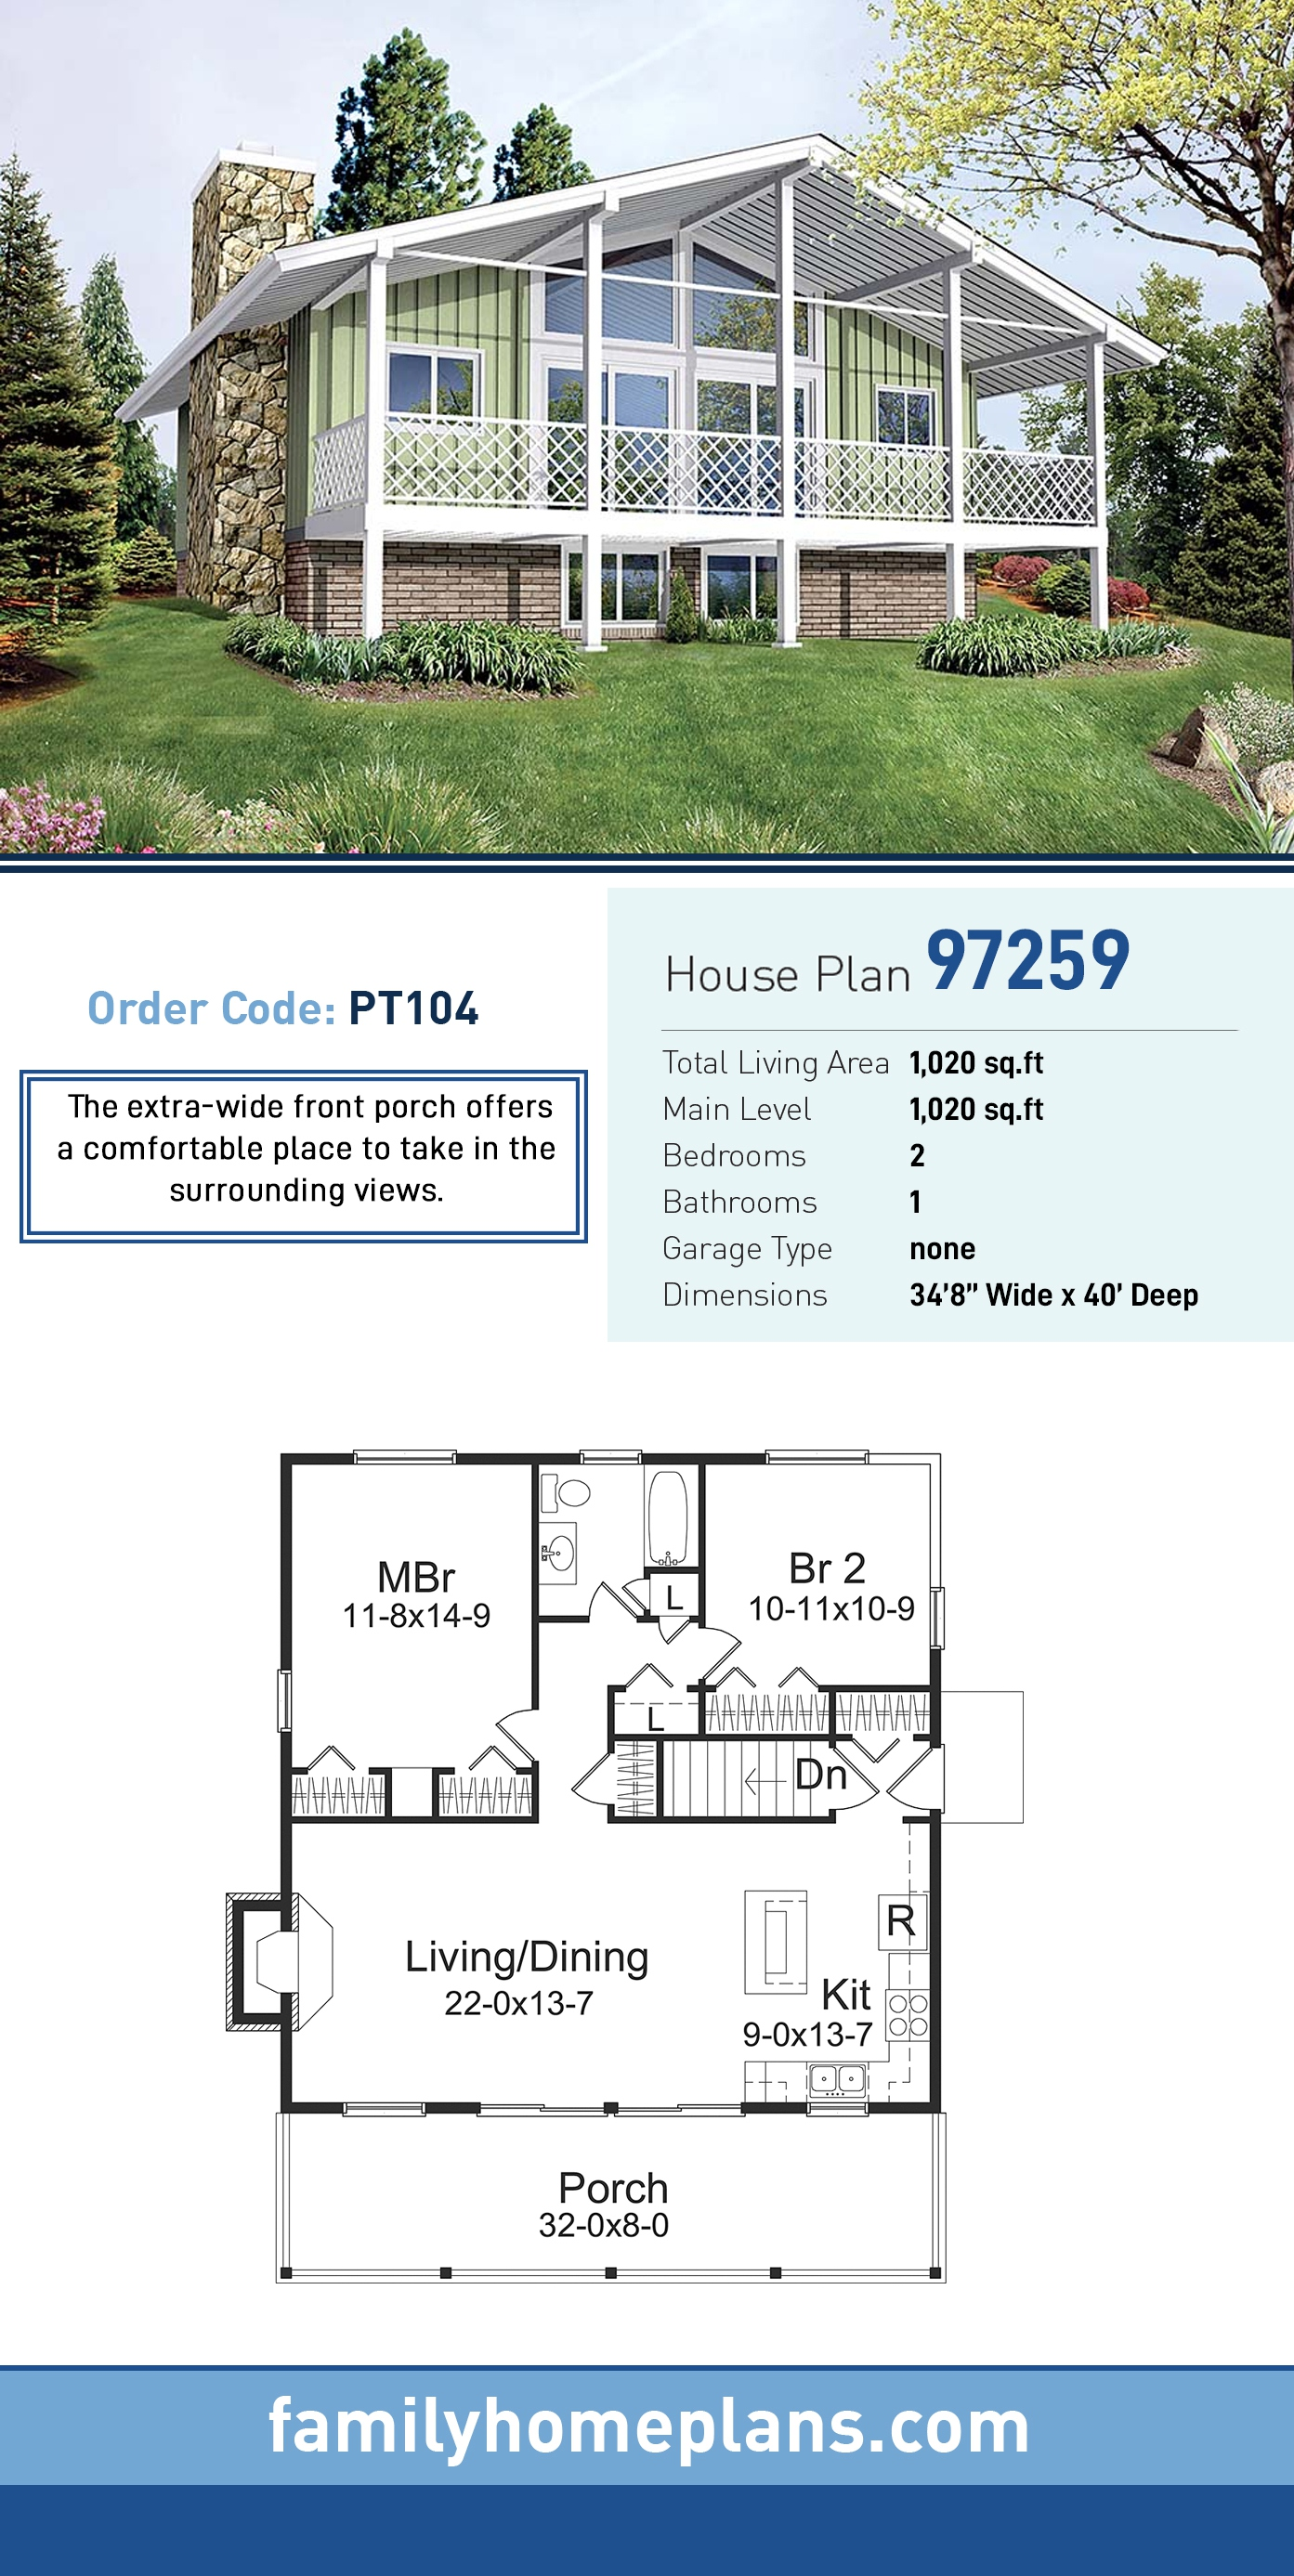 Bungalow, Contemporary, Country, Traditional House Plan 97259 with 2 Beds, 1 Baths